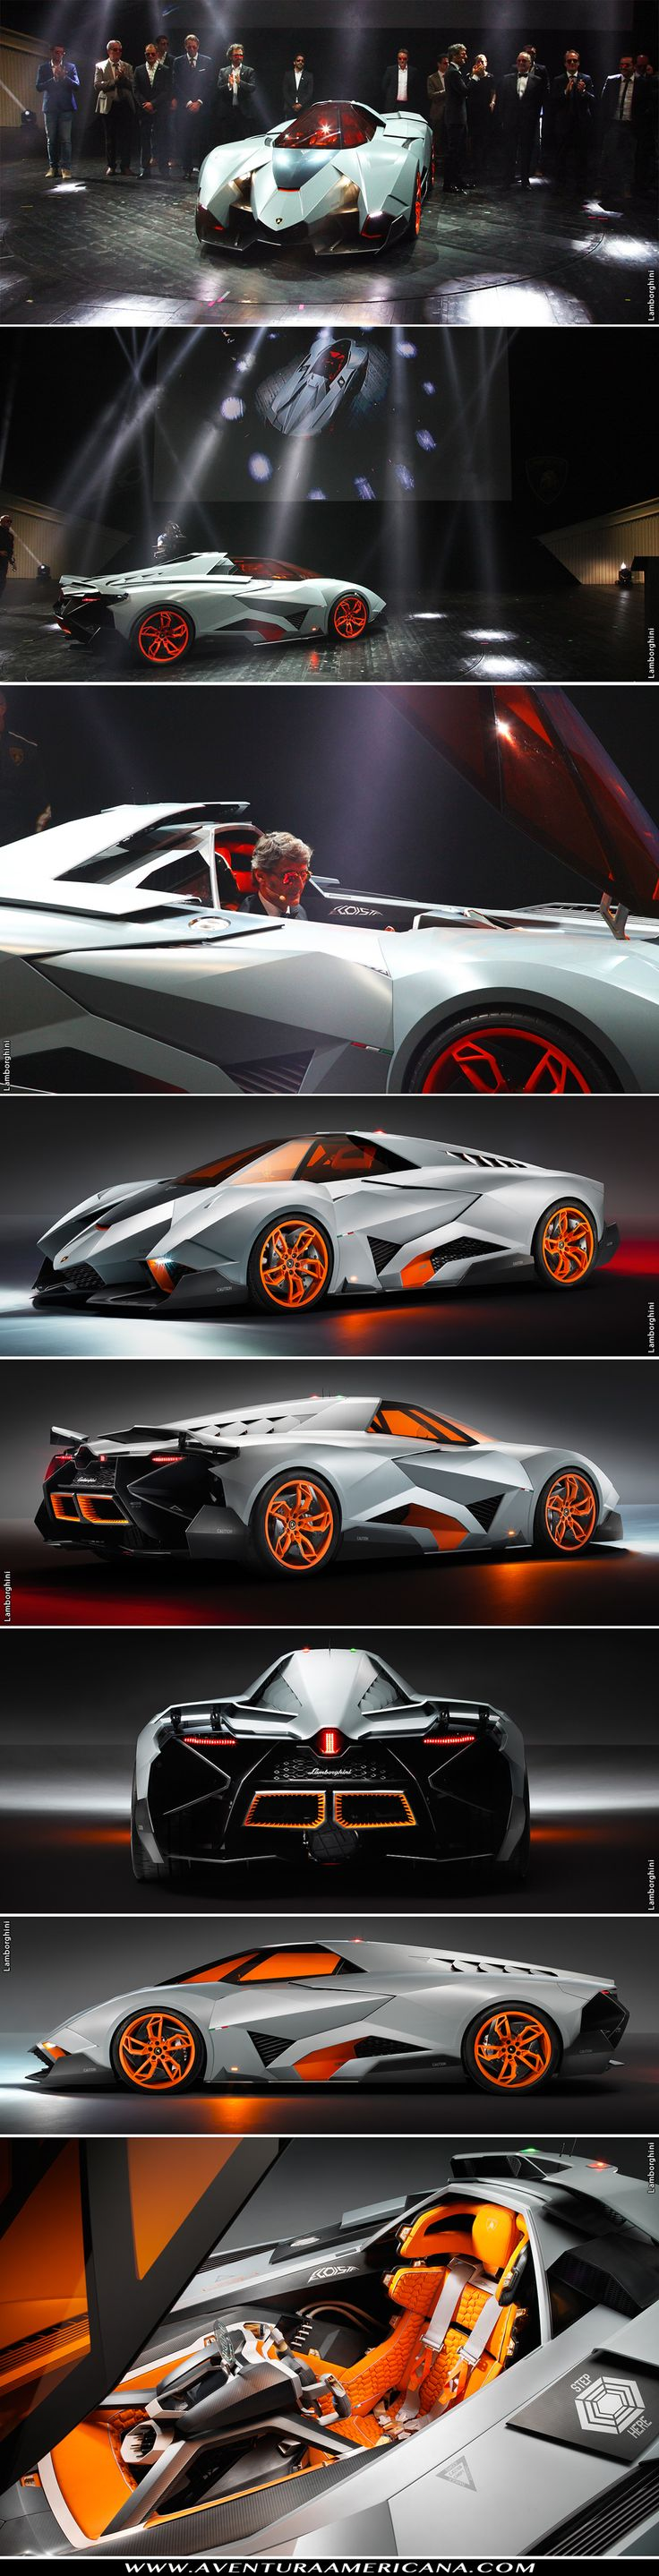 818 best images about lamborghini car 39 s on pinterest car cool cars and luxury cars. Black Bedroom Furniture Sets. Home Design Ideas